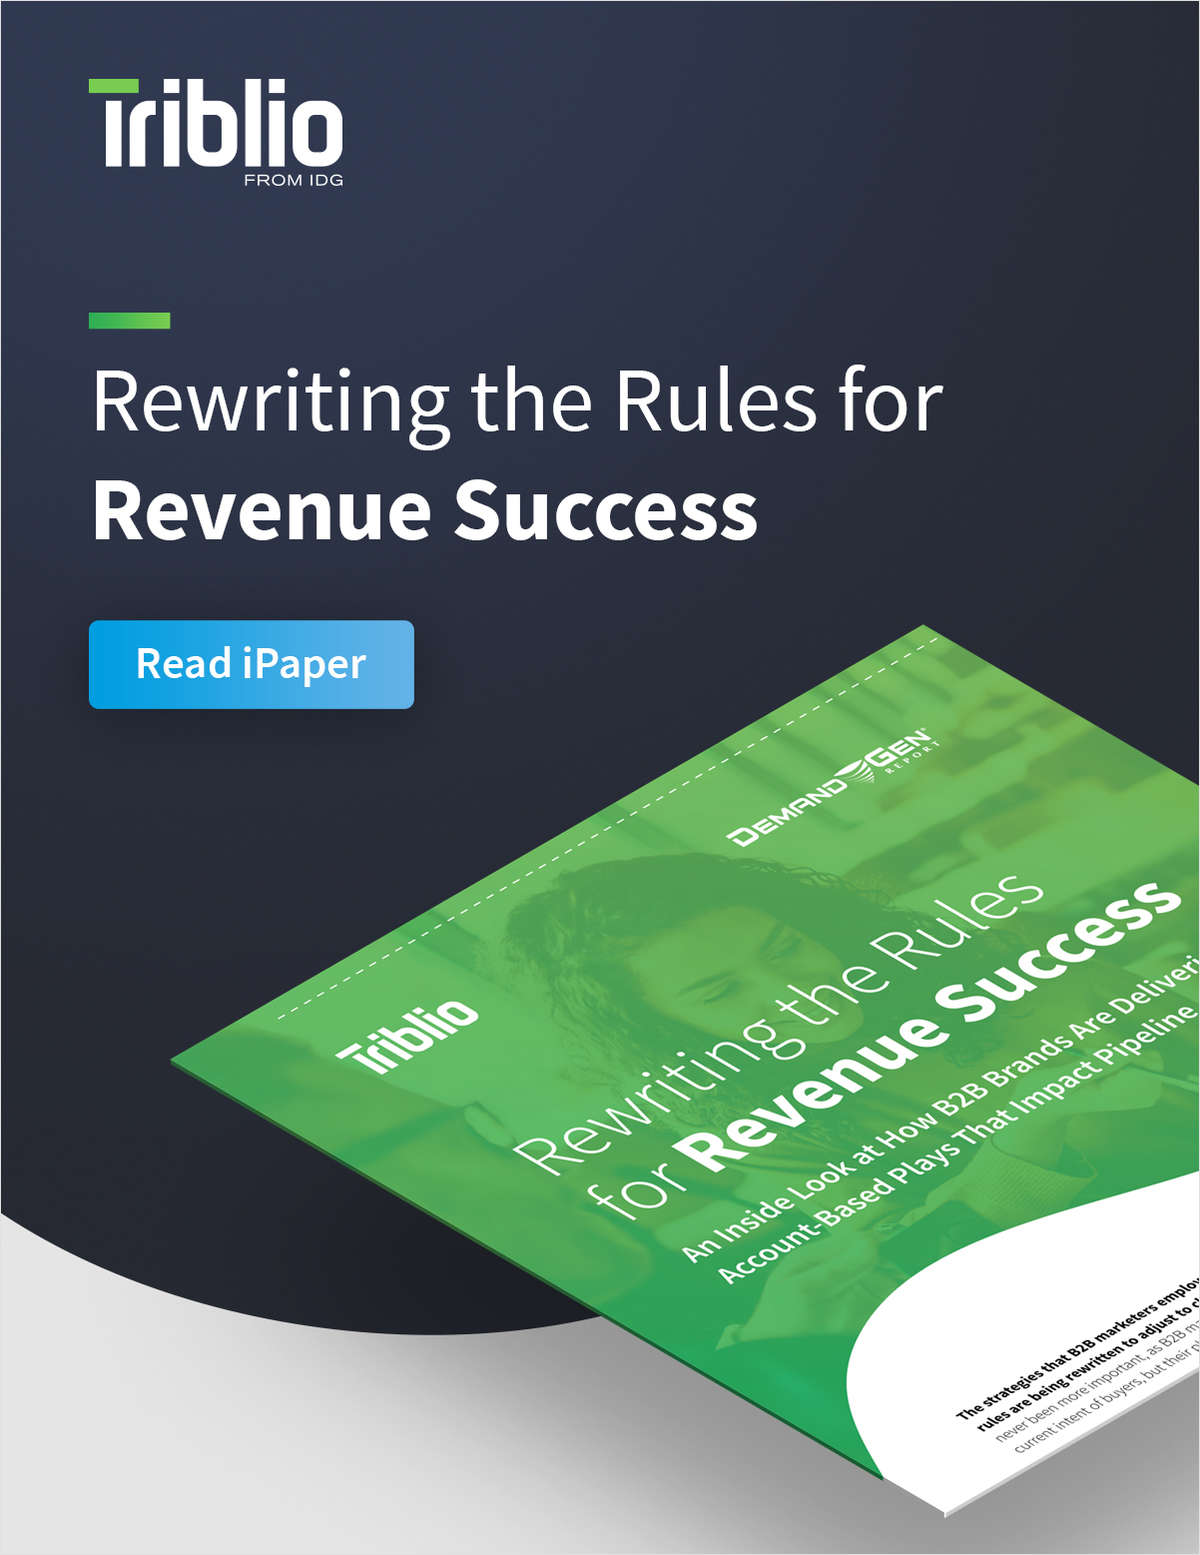 Rewriting the Rules for Revenue Success